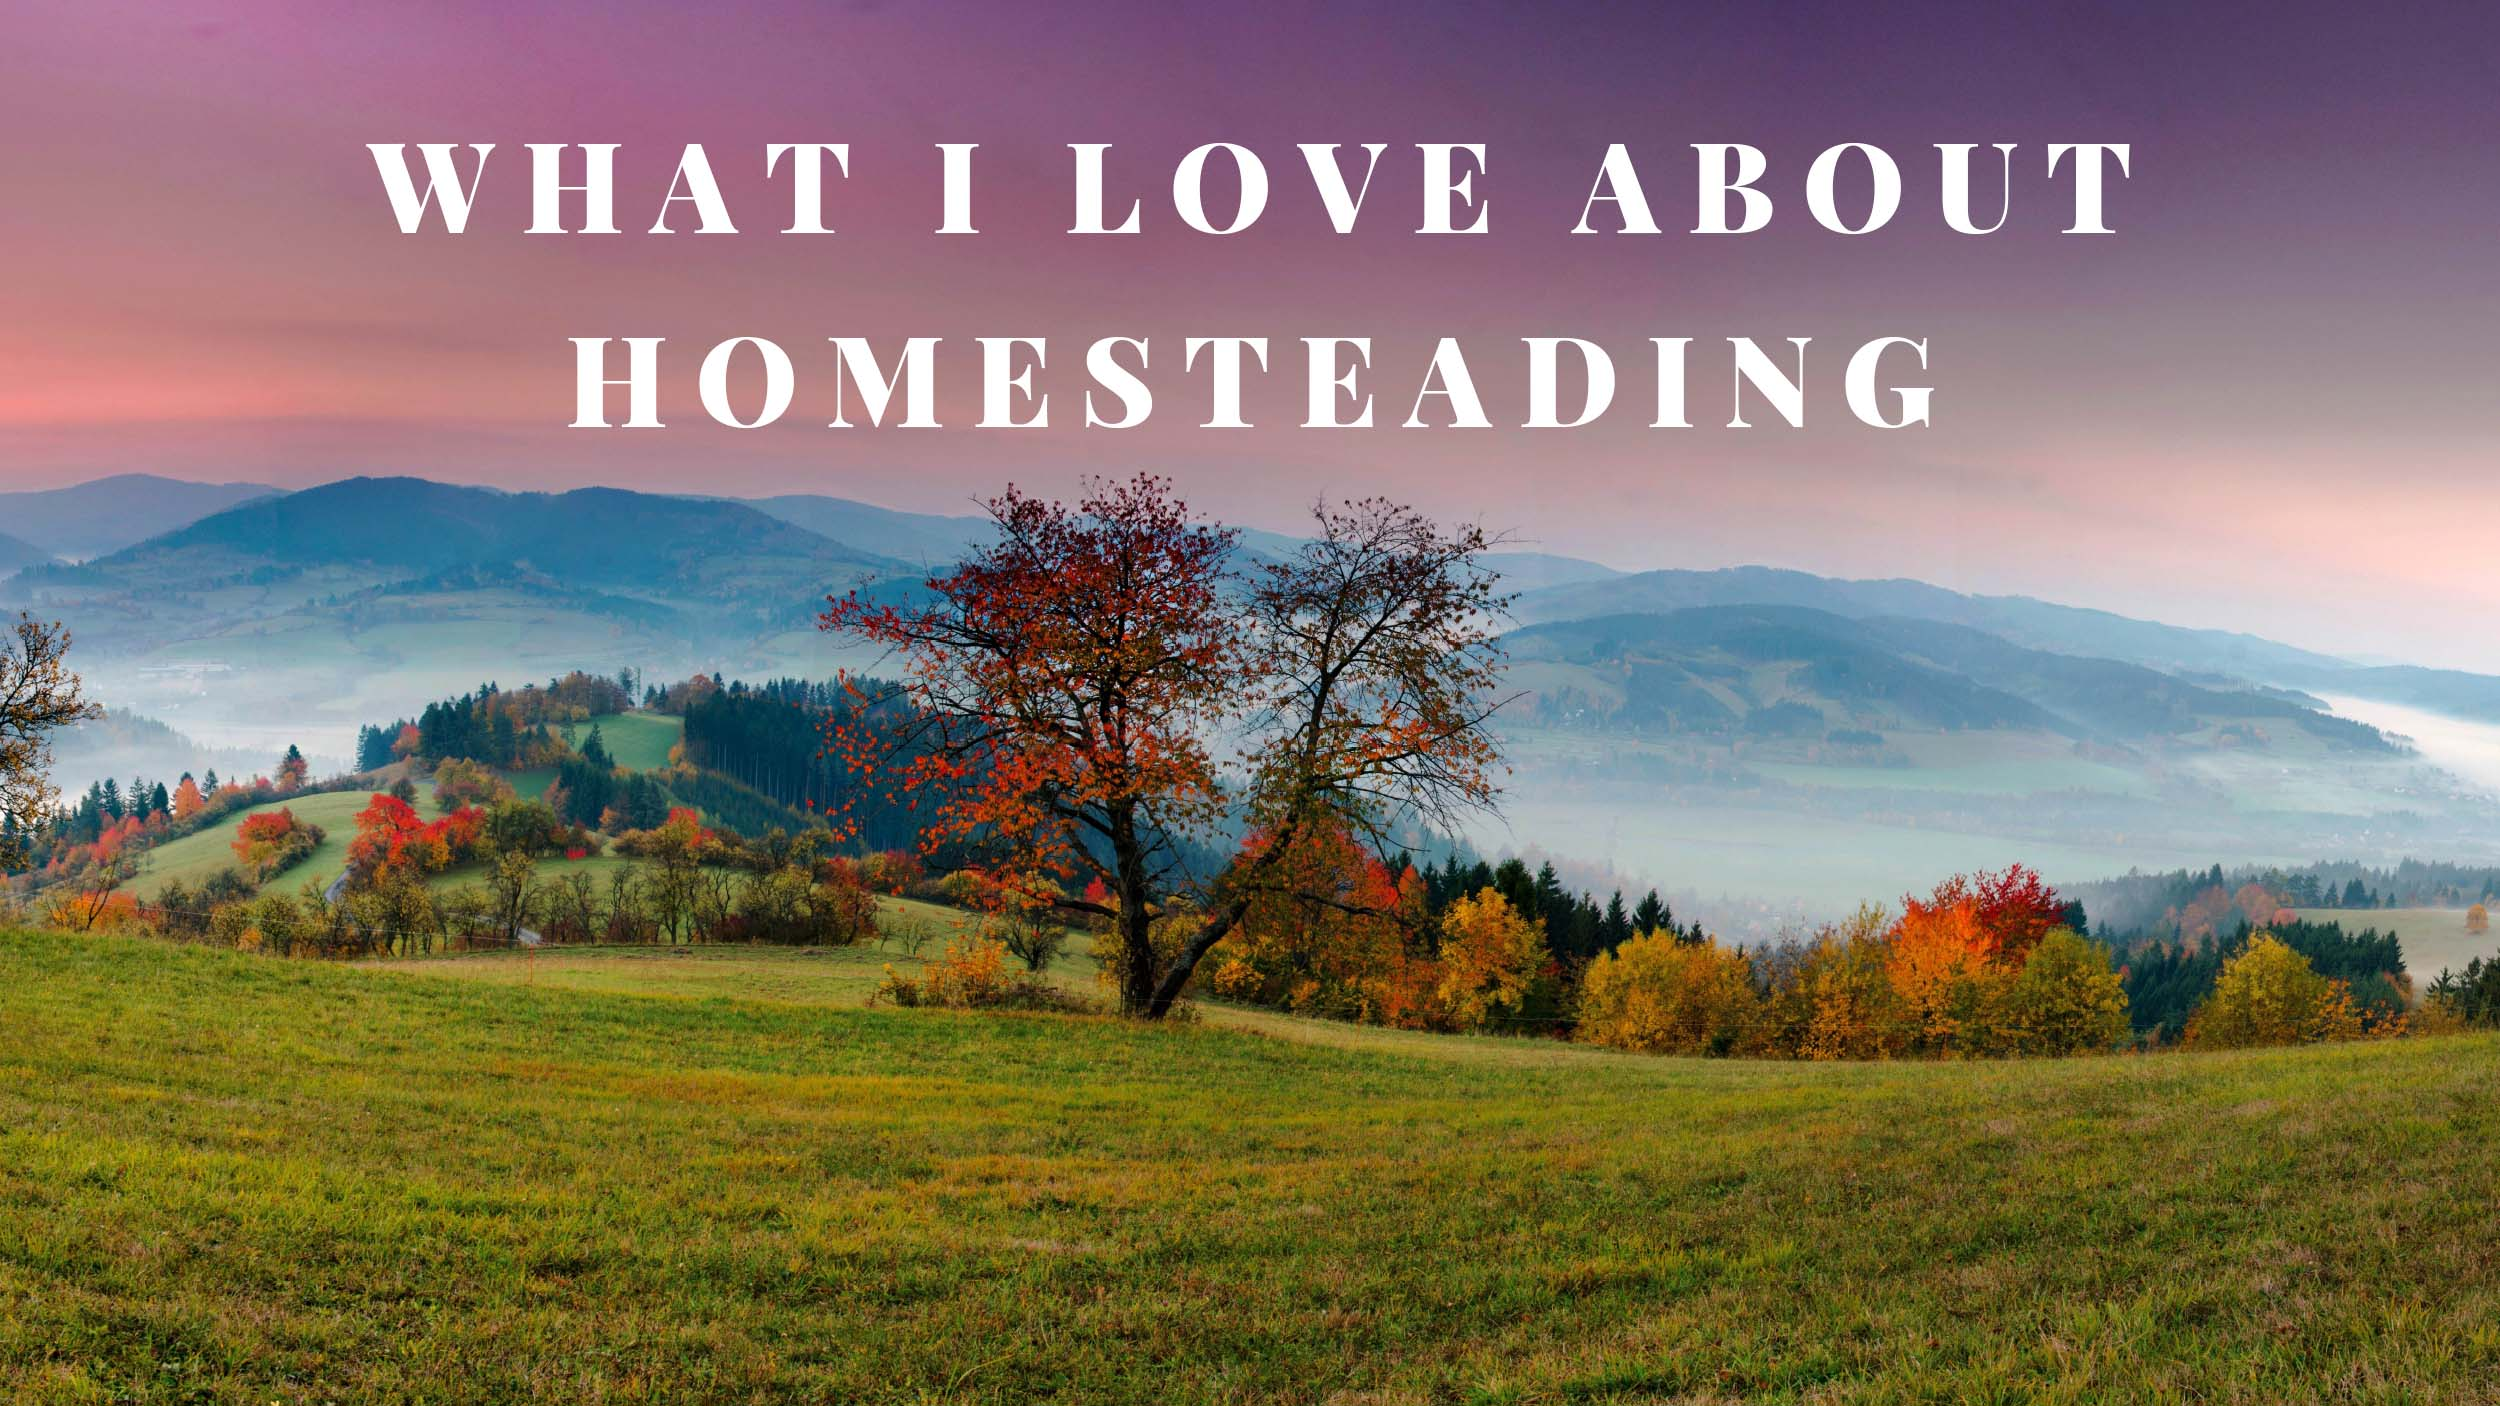 What I Love About Homesteading